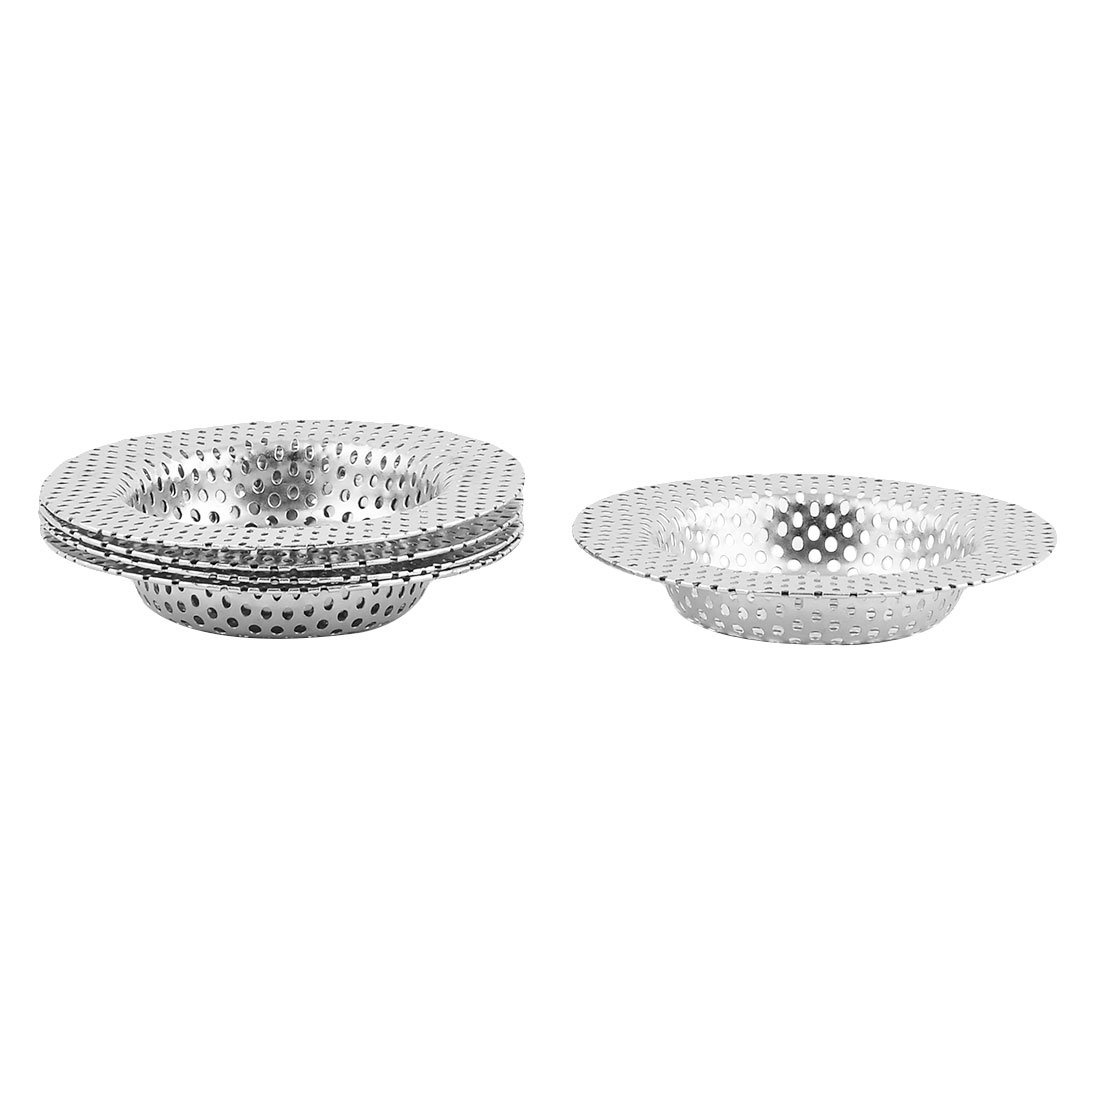 uxcell Stainless Steel Home Round Shaped Sink Basin Rubbish Filter Strainer Stopper 5pcs